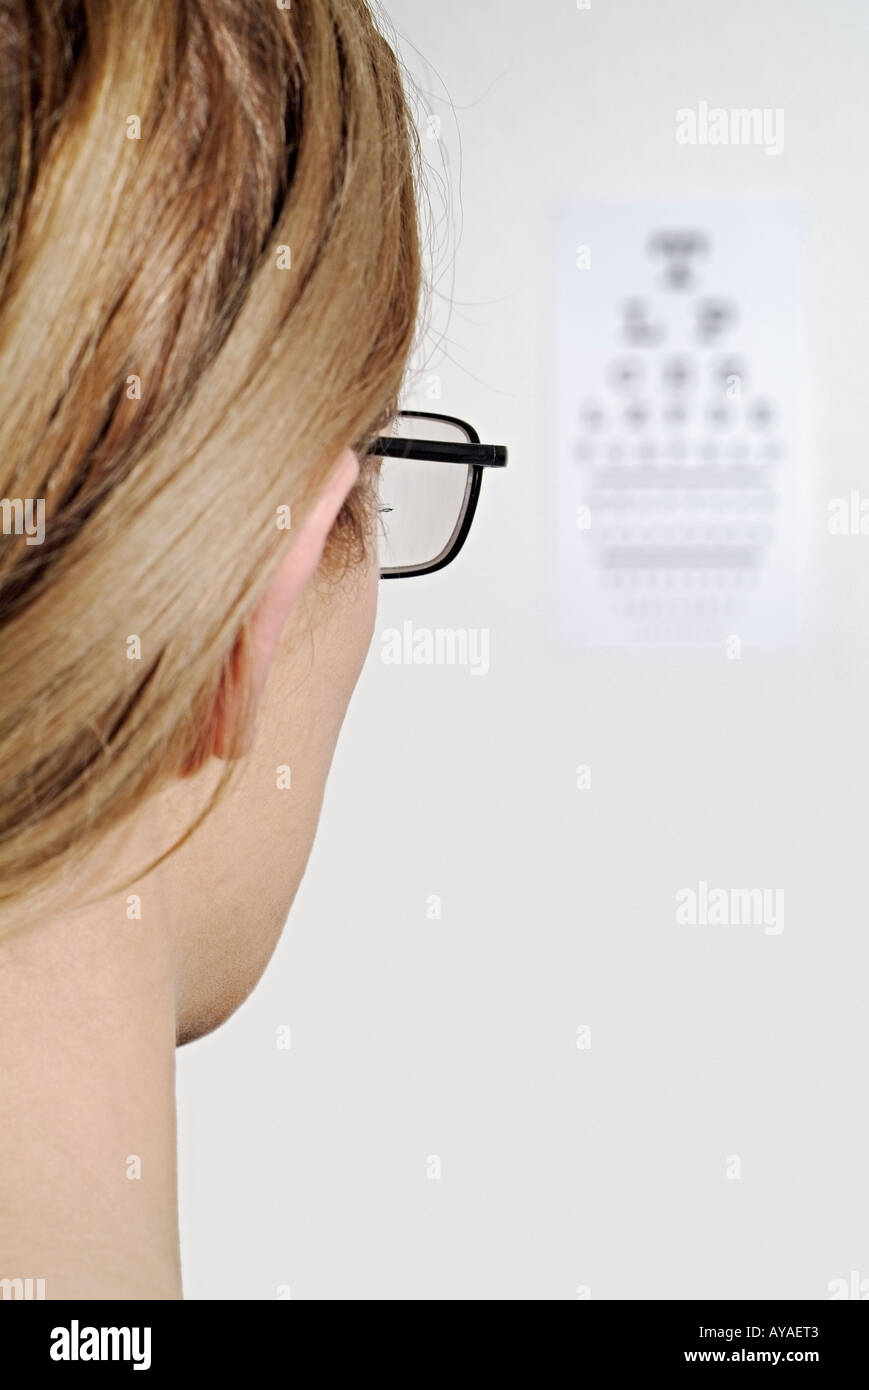 Woman Having Her Eye Sight With Spectacles Checked by Reading a Snellen Chart on an Opticians Wall - Stock Image